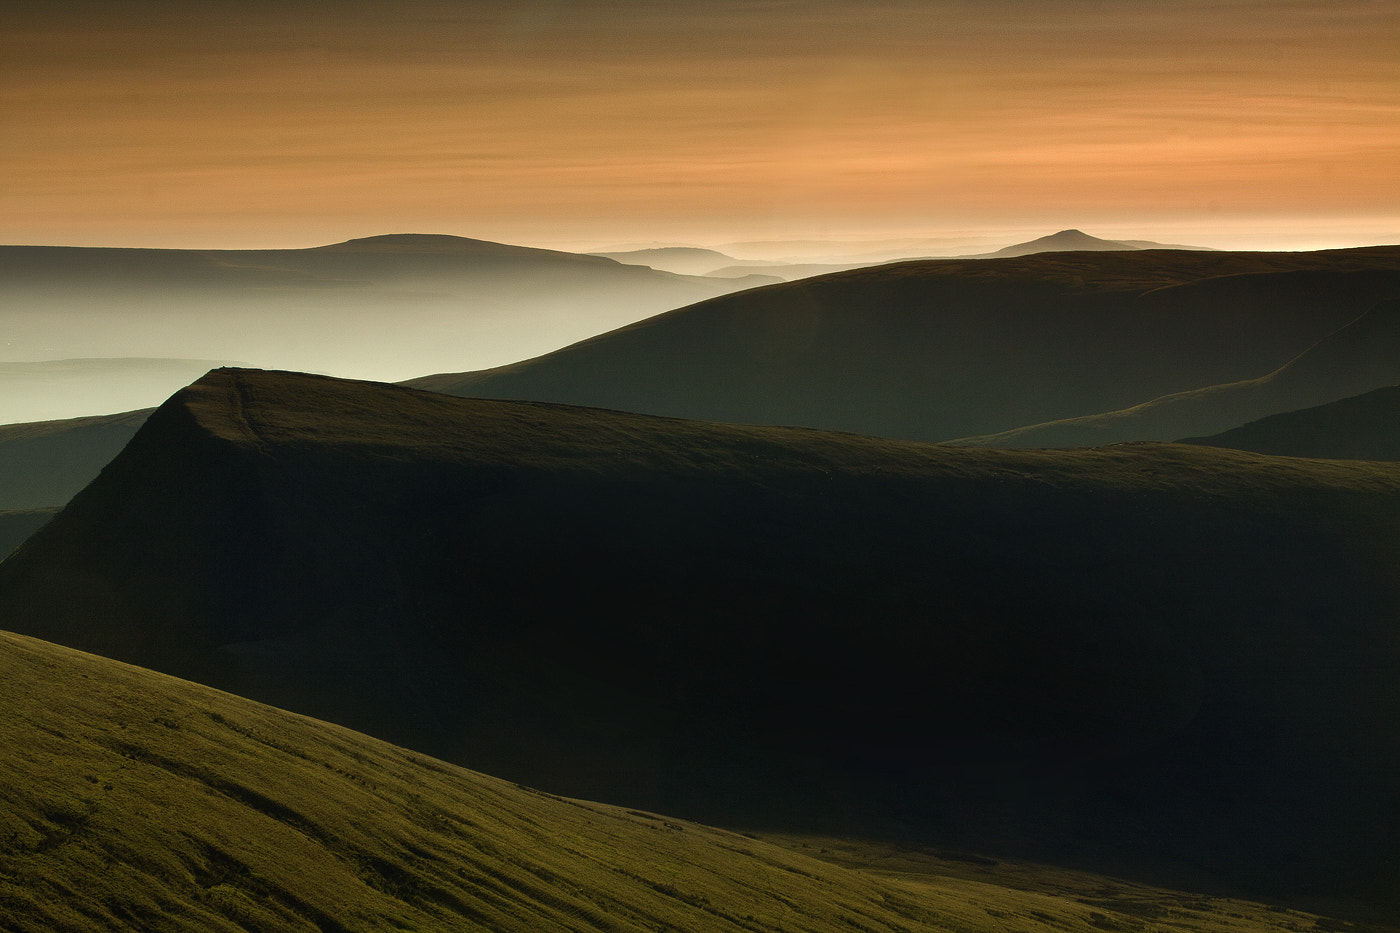 Photograph Sugarloaf Dawn II by Alan Coles on 500px